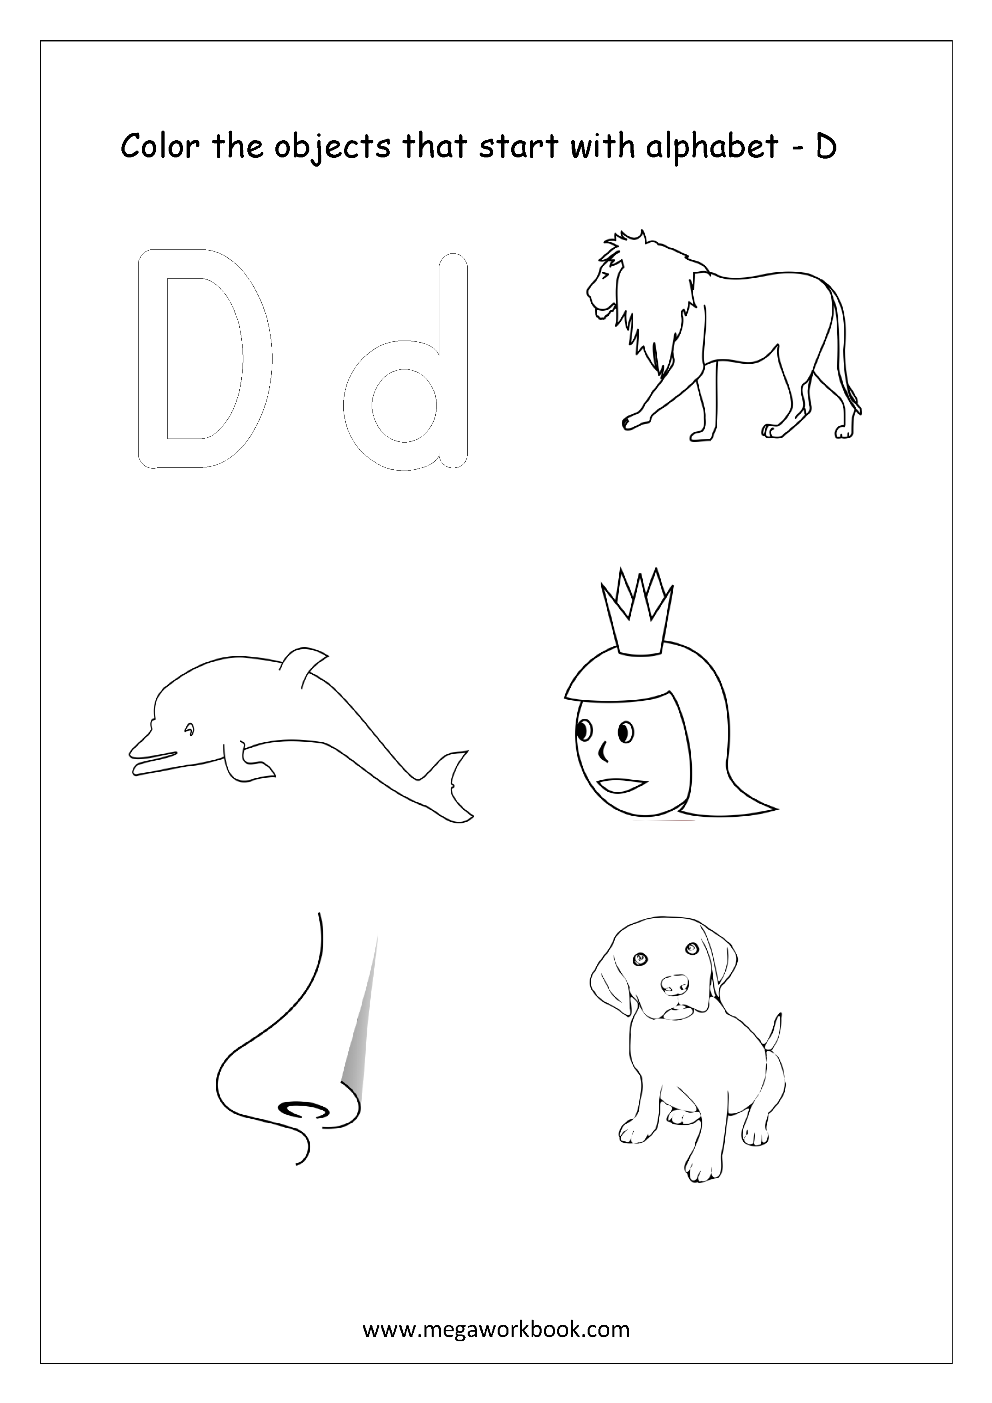 Free english worksheets alphabet picture coloring megaworkbook english worksheet color only the objects starting with alphabet d thecheapjerseys Gallery